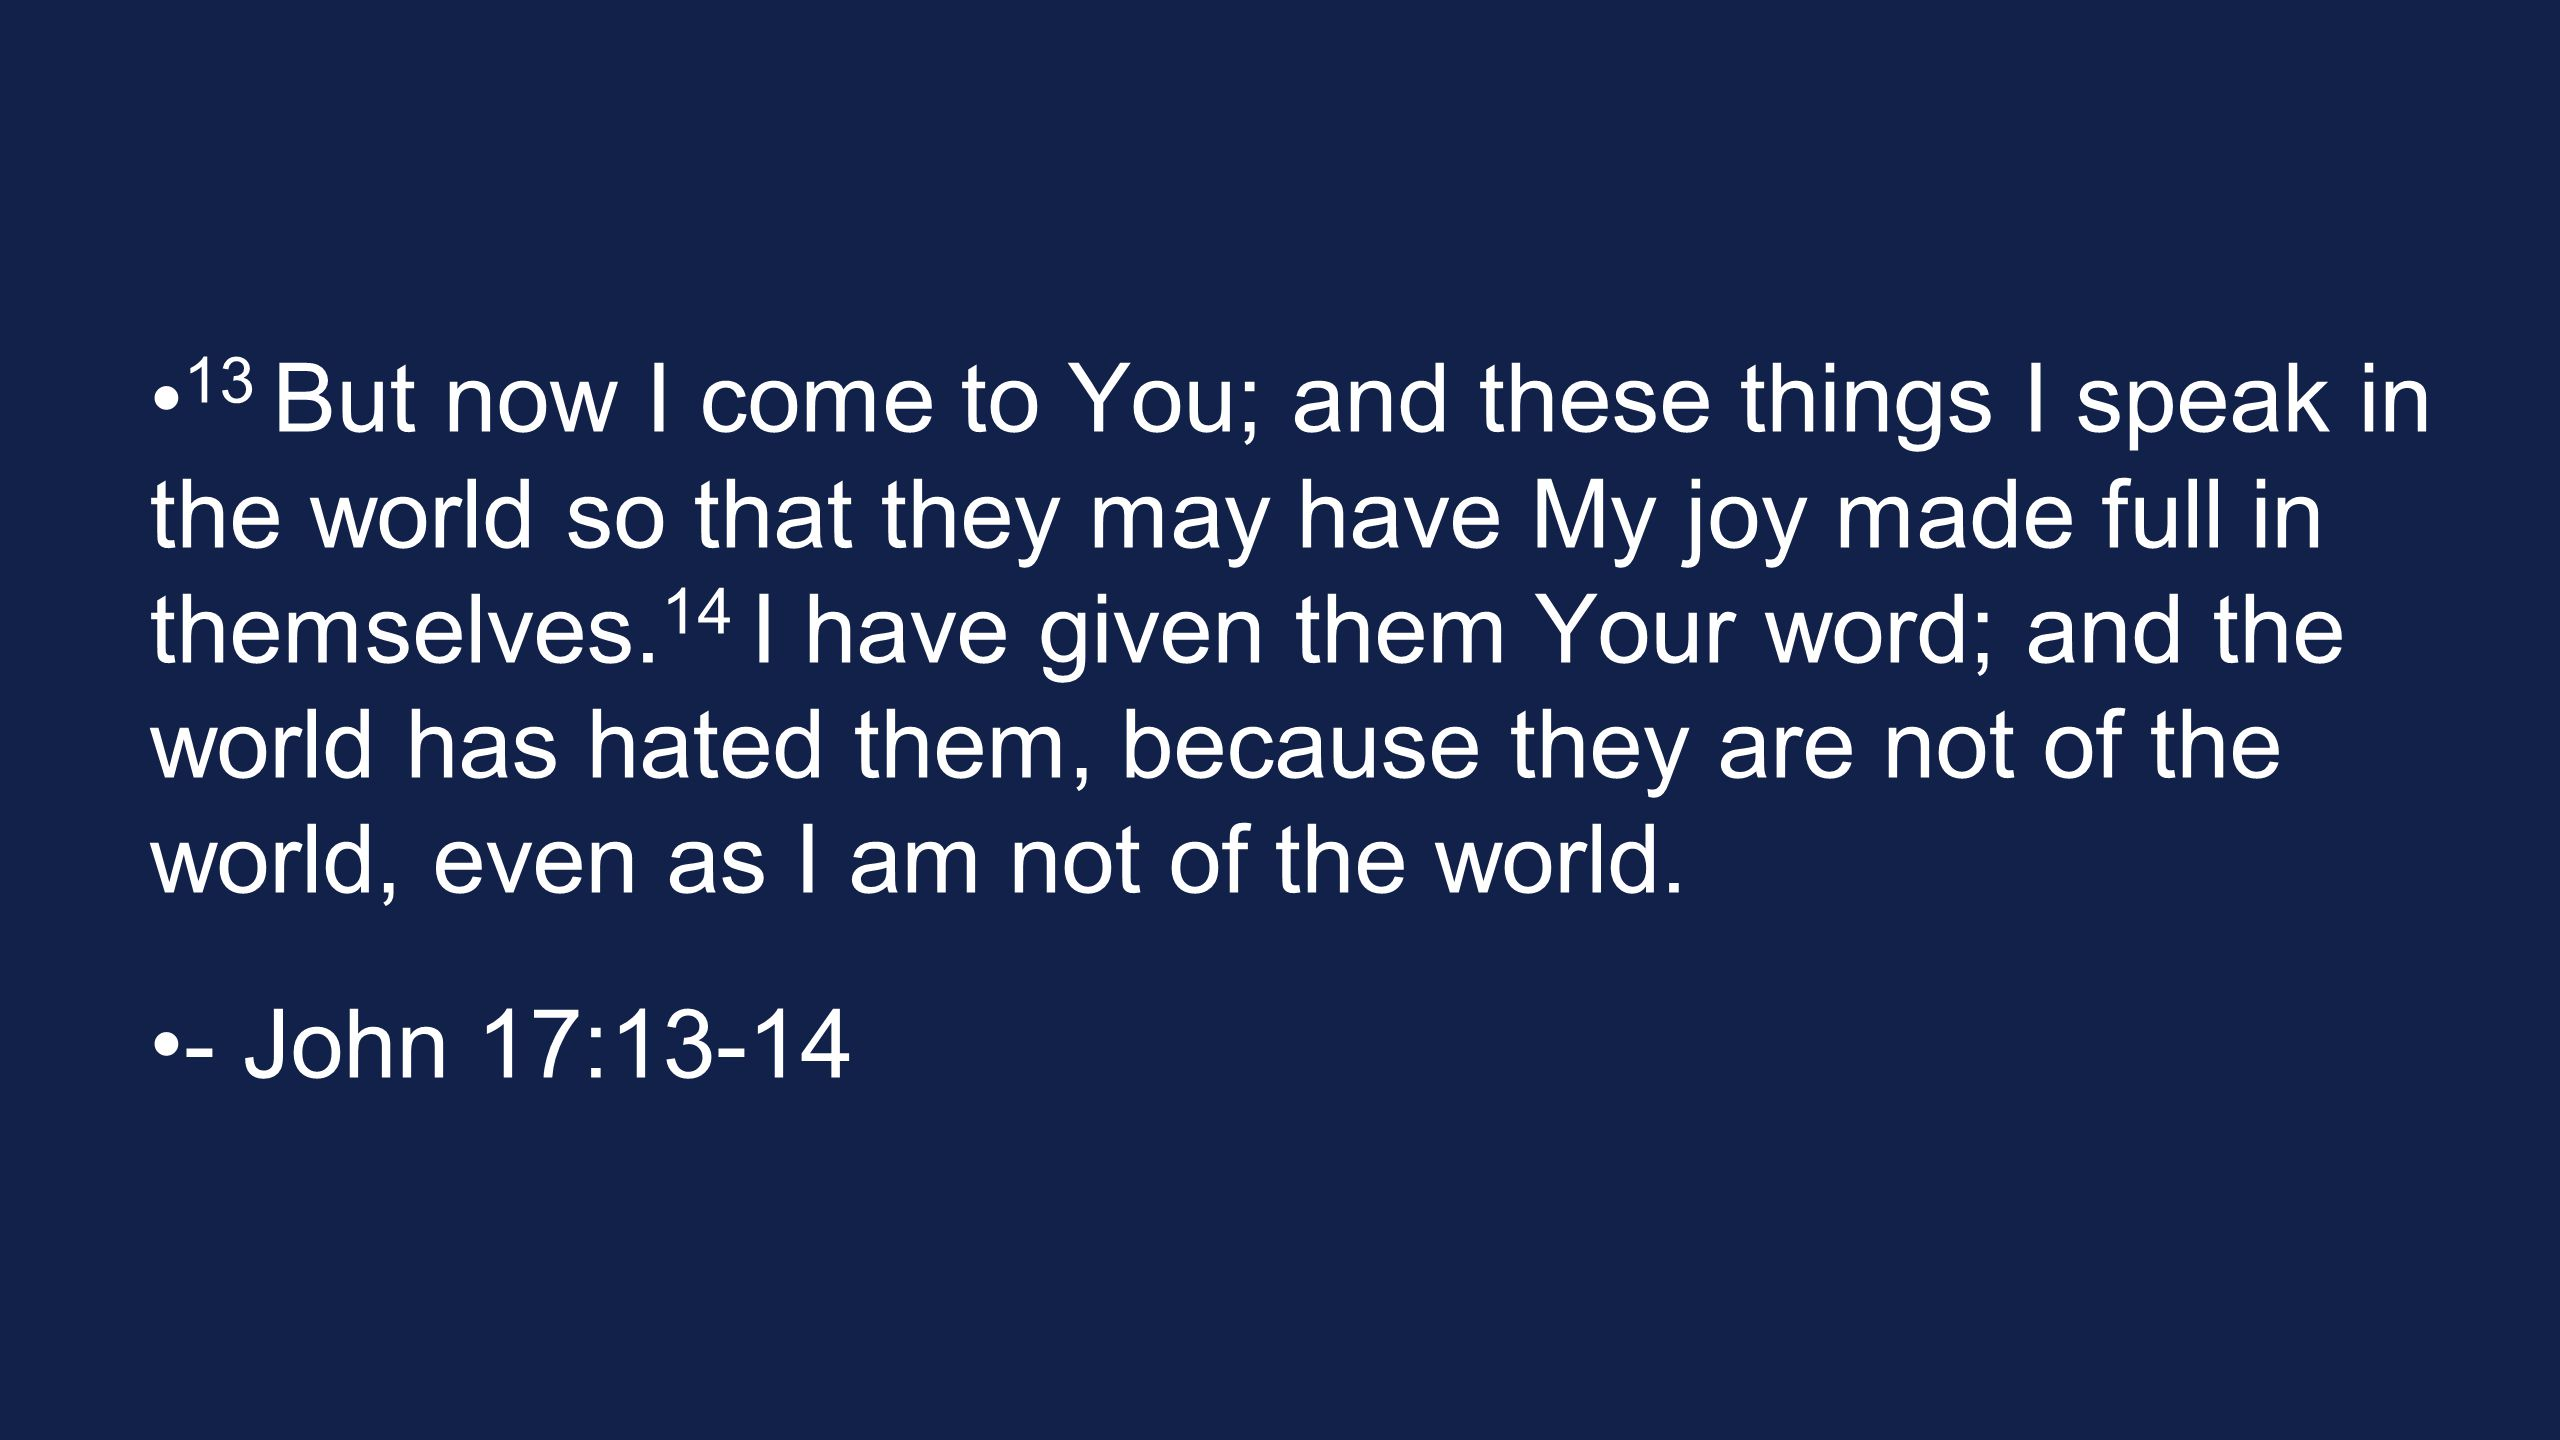 13 But now I come to You; and these things I speak in the world so that they may have My joy made full in themselves.14 I have given them Your word; and the world has hated them, because they are not of the world, even as I am not of the world.